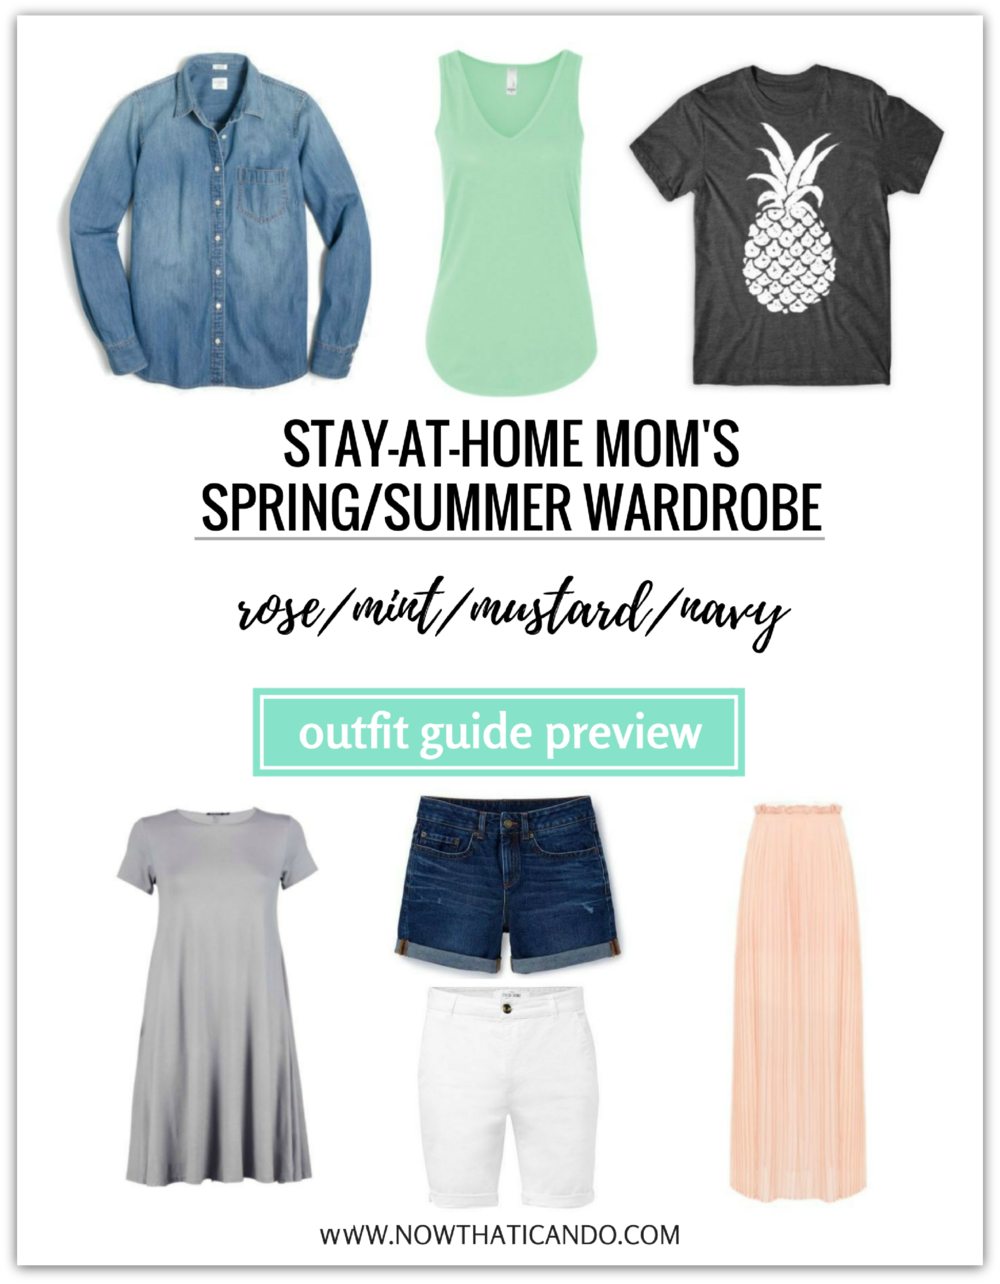 Spring/Summer Style Guide for Moms